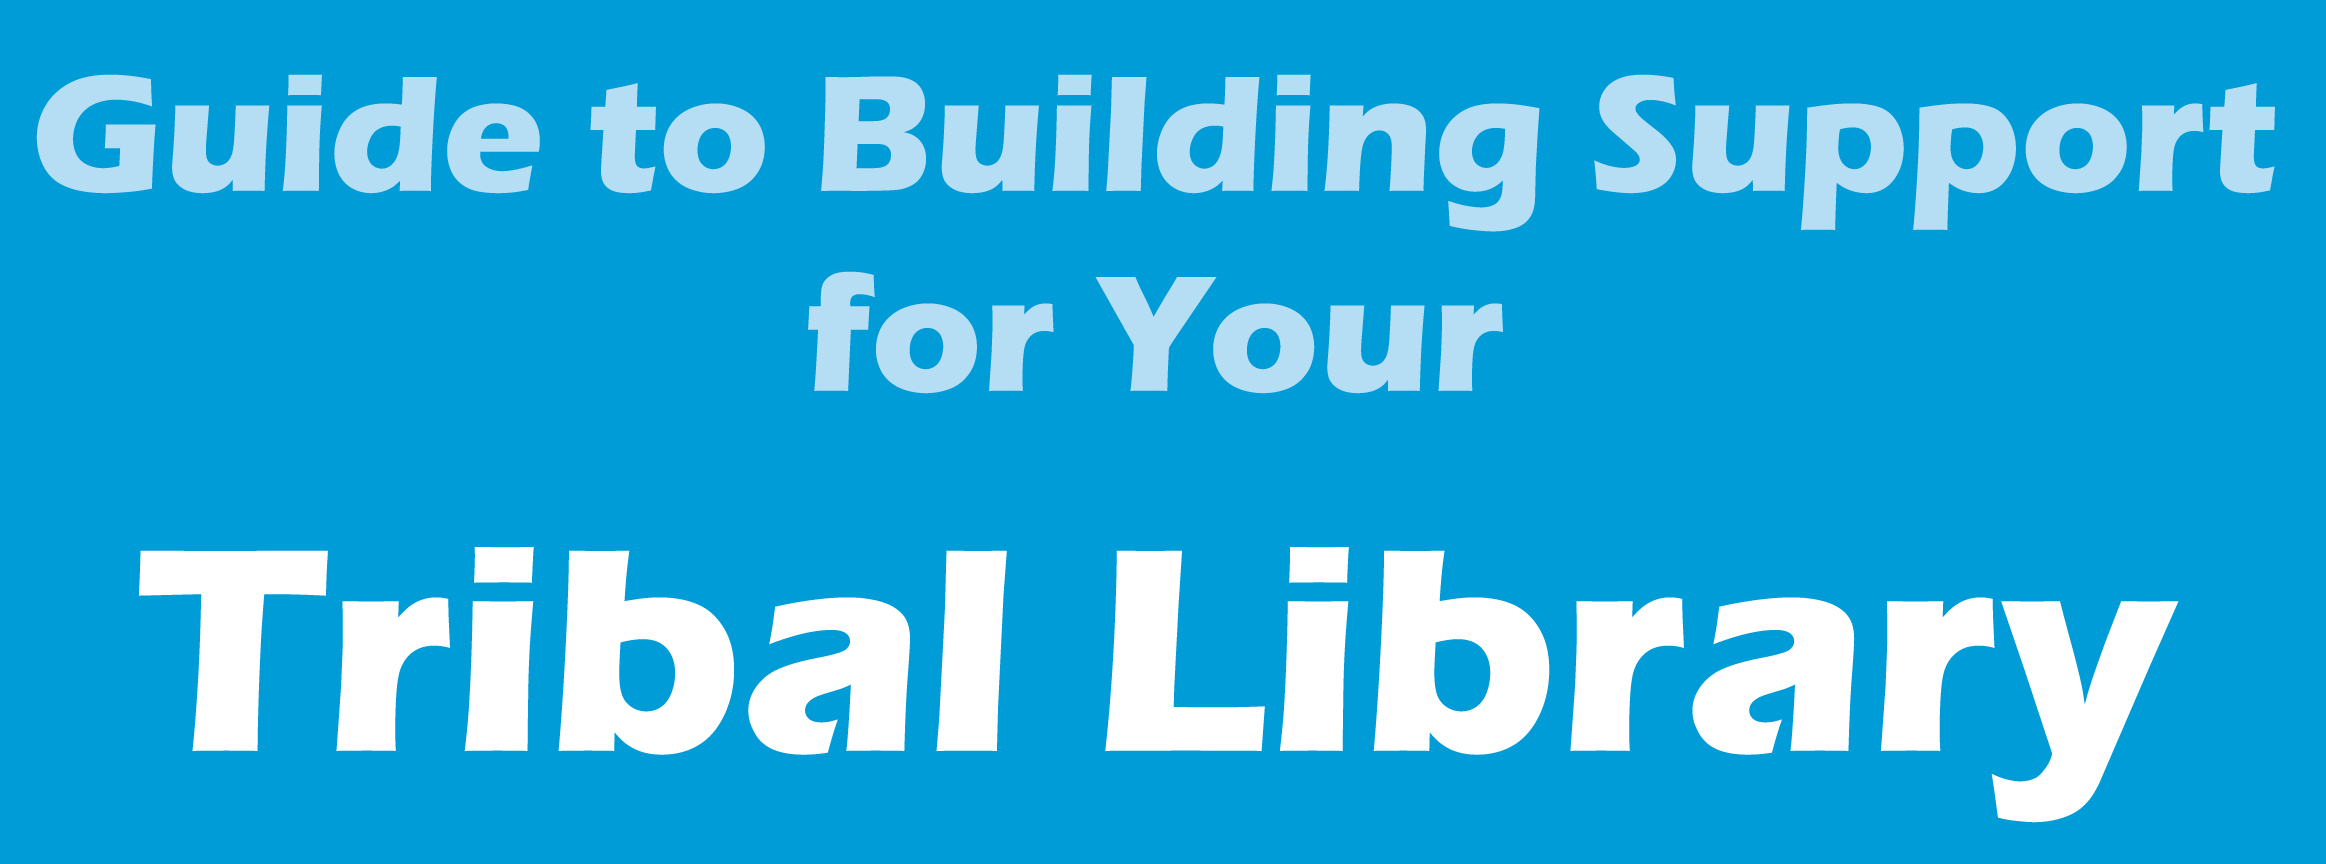 Guide to Building Support for your Tribal Library